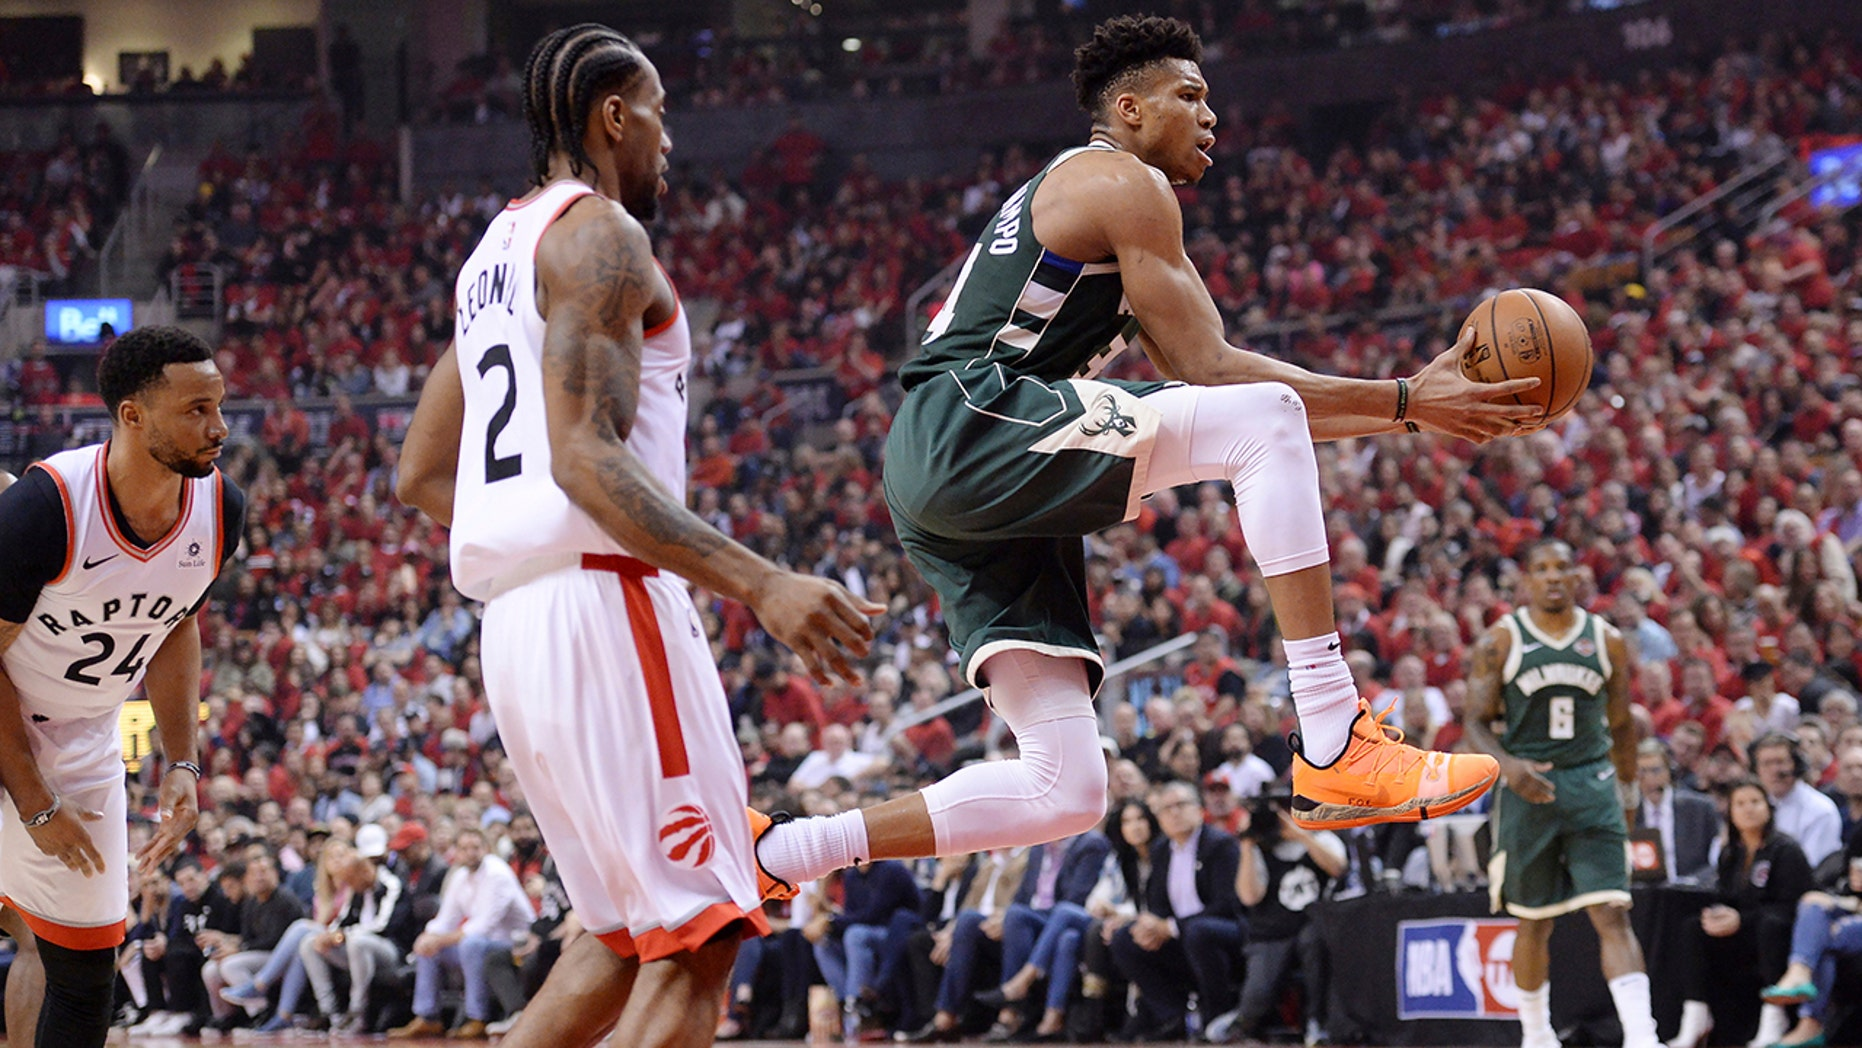 Milwaukee Bucks forward Giannis Antetokounmpo (34) drives to the net past Toronto Raptors forward Kawhi Leonard (2) during first half NBA Eastern Conference finals basketball action in Toronto on Sunday, May 19, 2019. (Nathan Denette/The Canadian Press via AP)